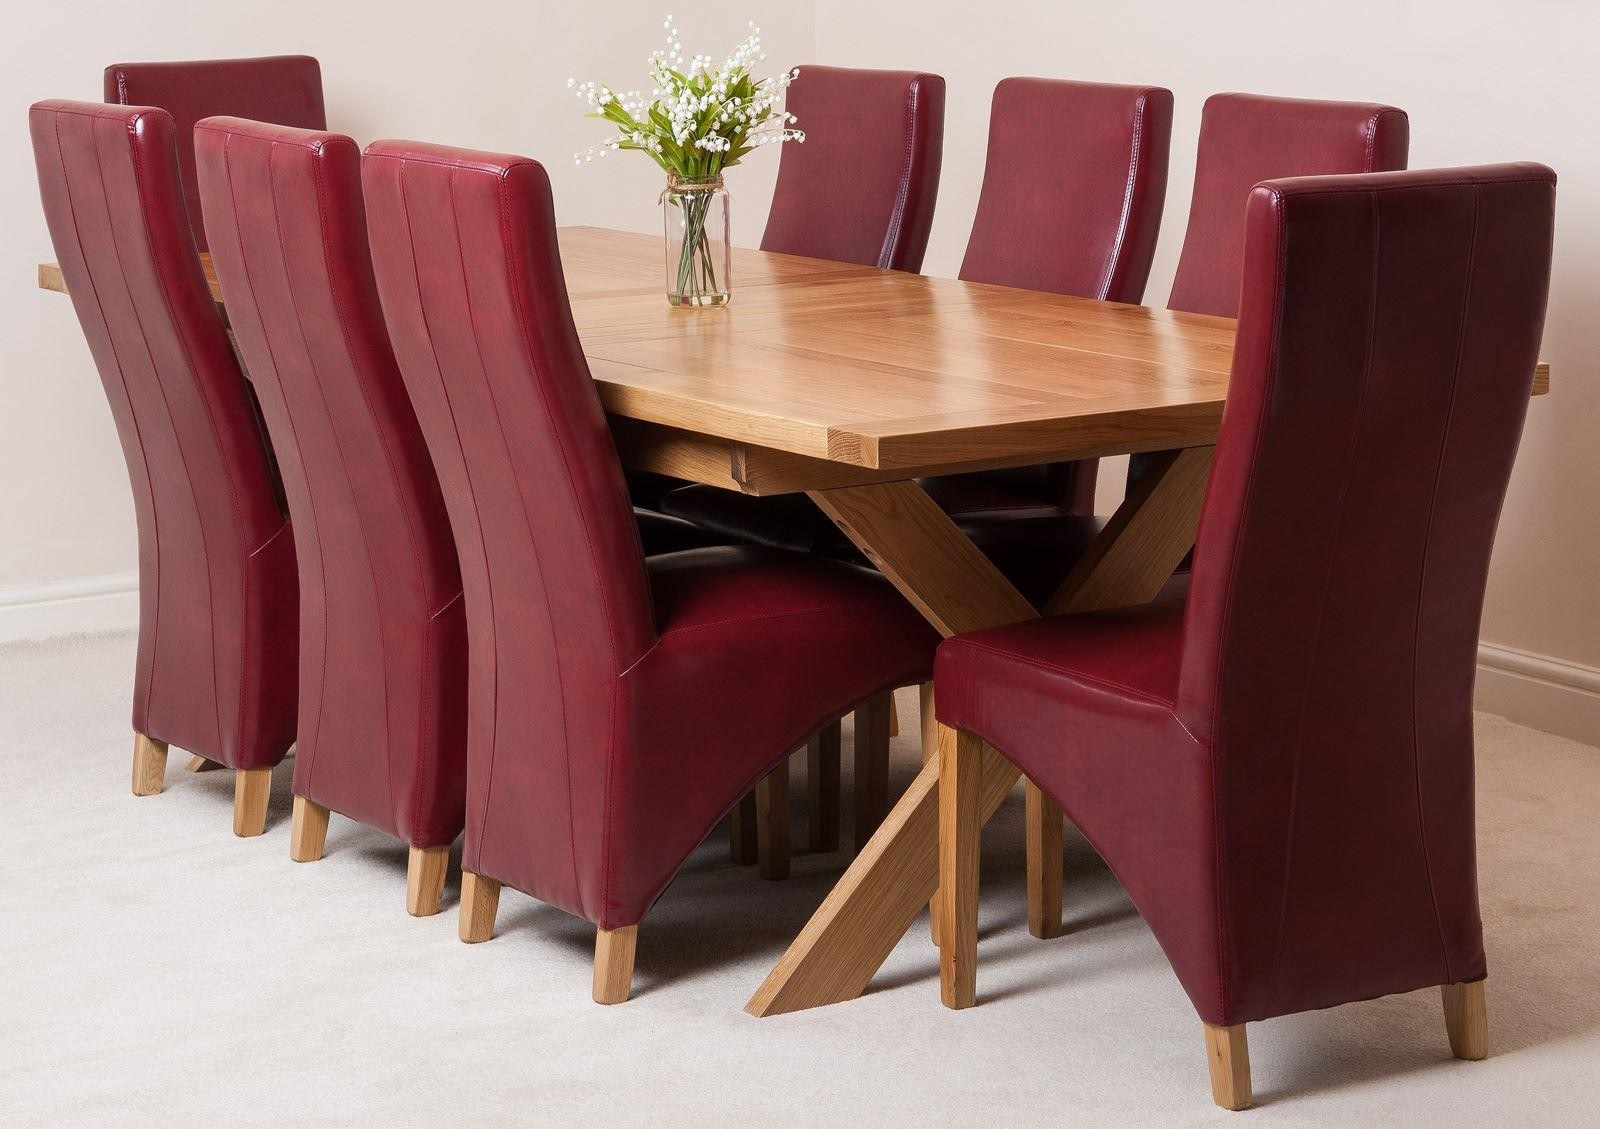 Vermont Solid Oak 200cm-240cm Crossed Leg Extending Dining Table with 8 Lola Dining Chairs [Burgundy Leather]